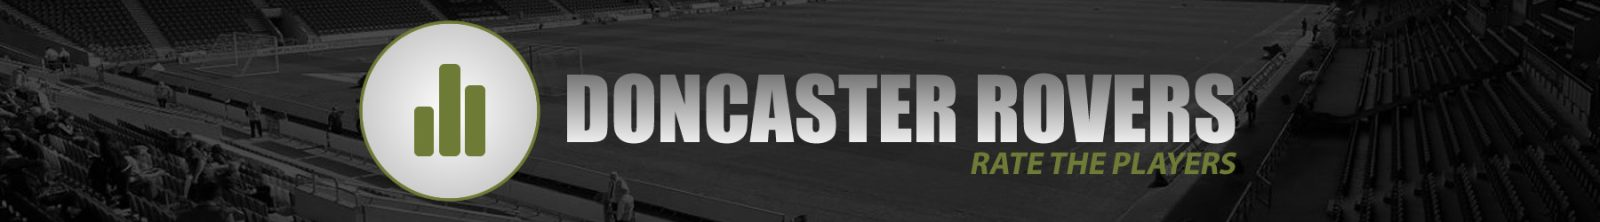 Rate Doncaster Rovers